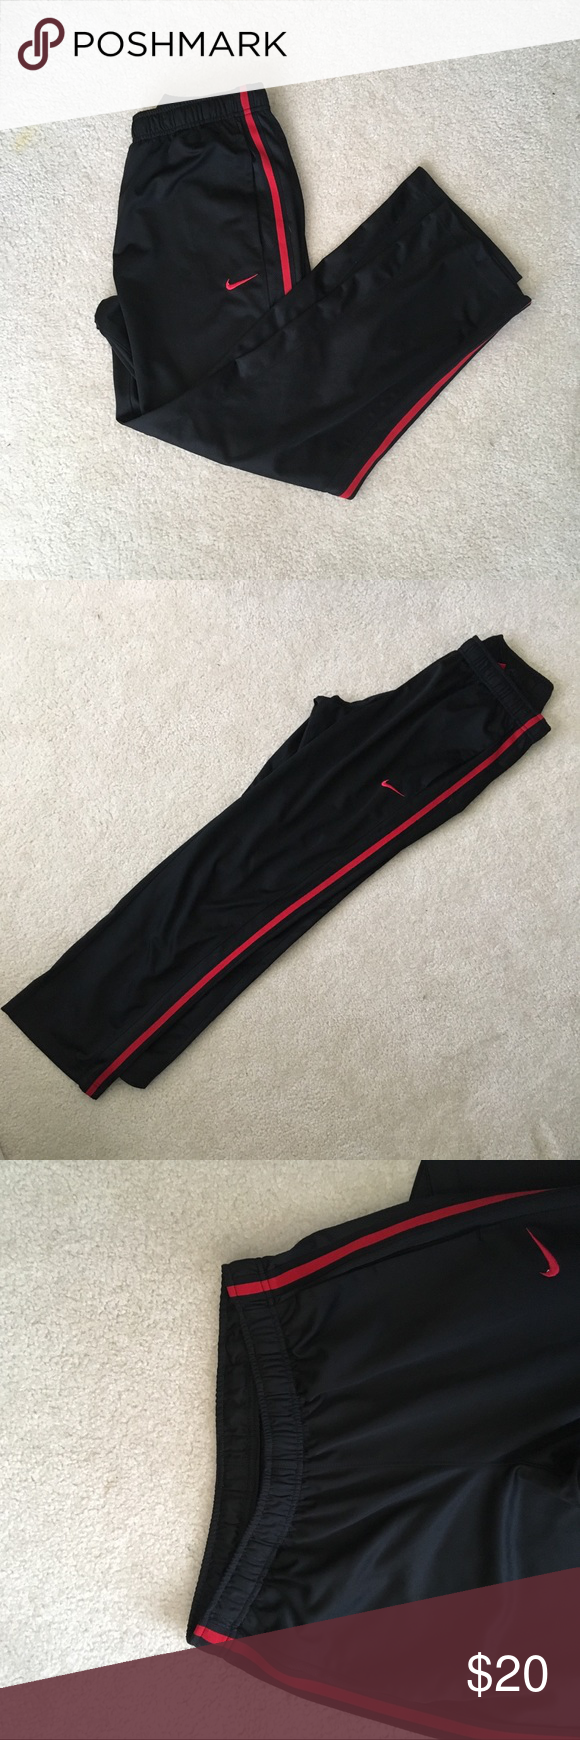 cheapest price new appearance special discount NIKE sweatpants NIKE sweatpants with red stripe down the ...